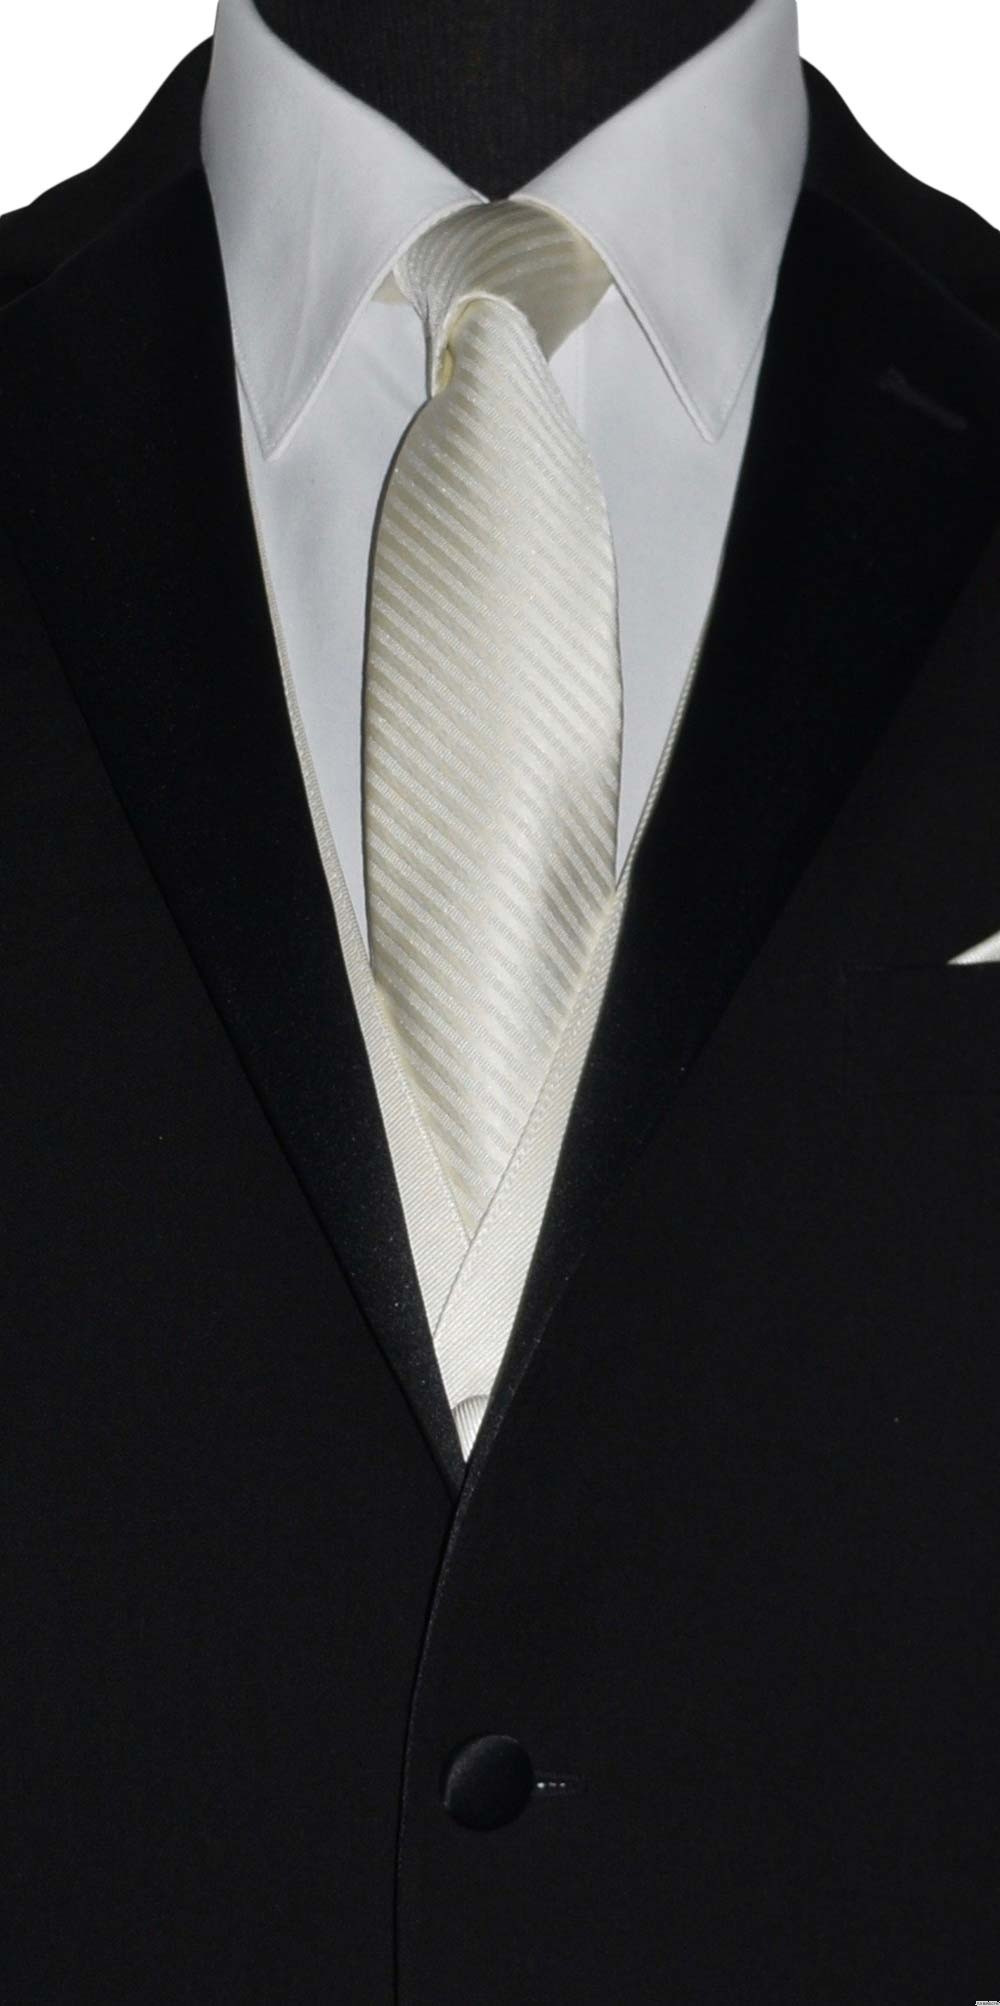 off-white ivory long tie for groom to match off-white ivory bridal by San Miguel Formals